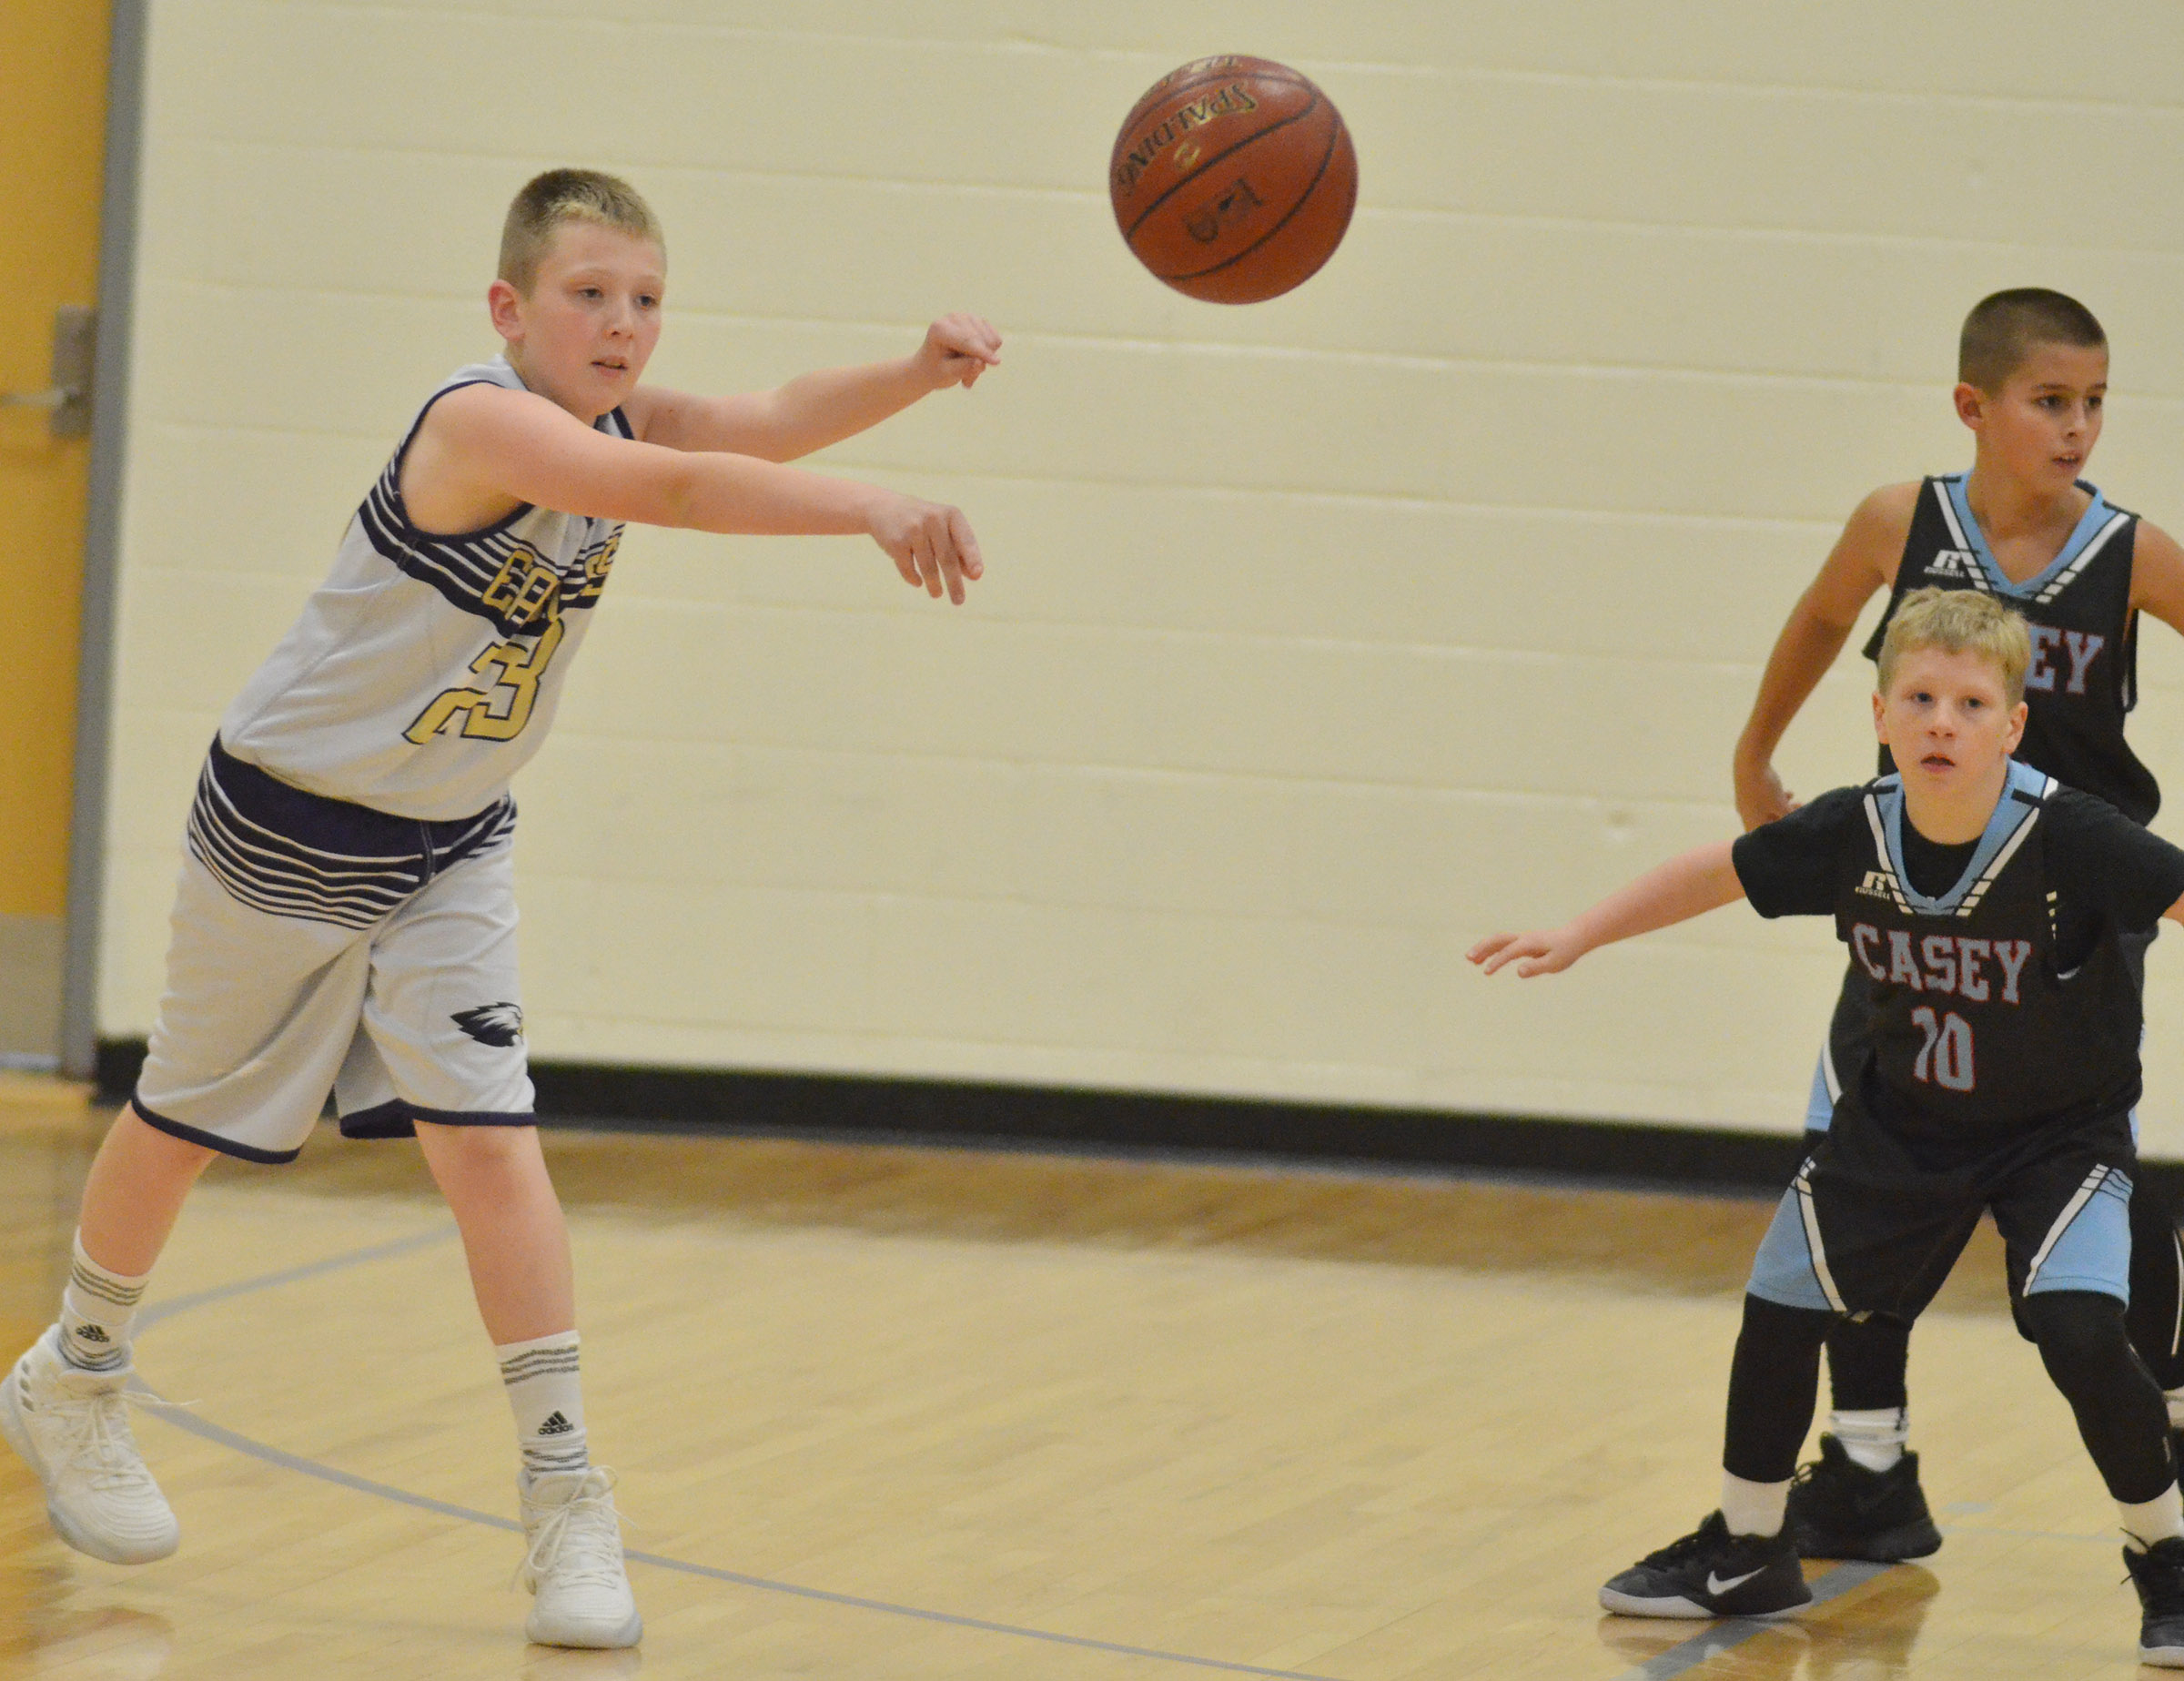 Campbellsville Elementary School fifth-grader Kaleb Miller passes the ball.